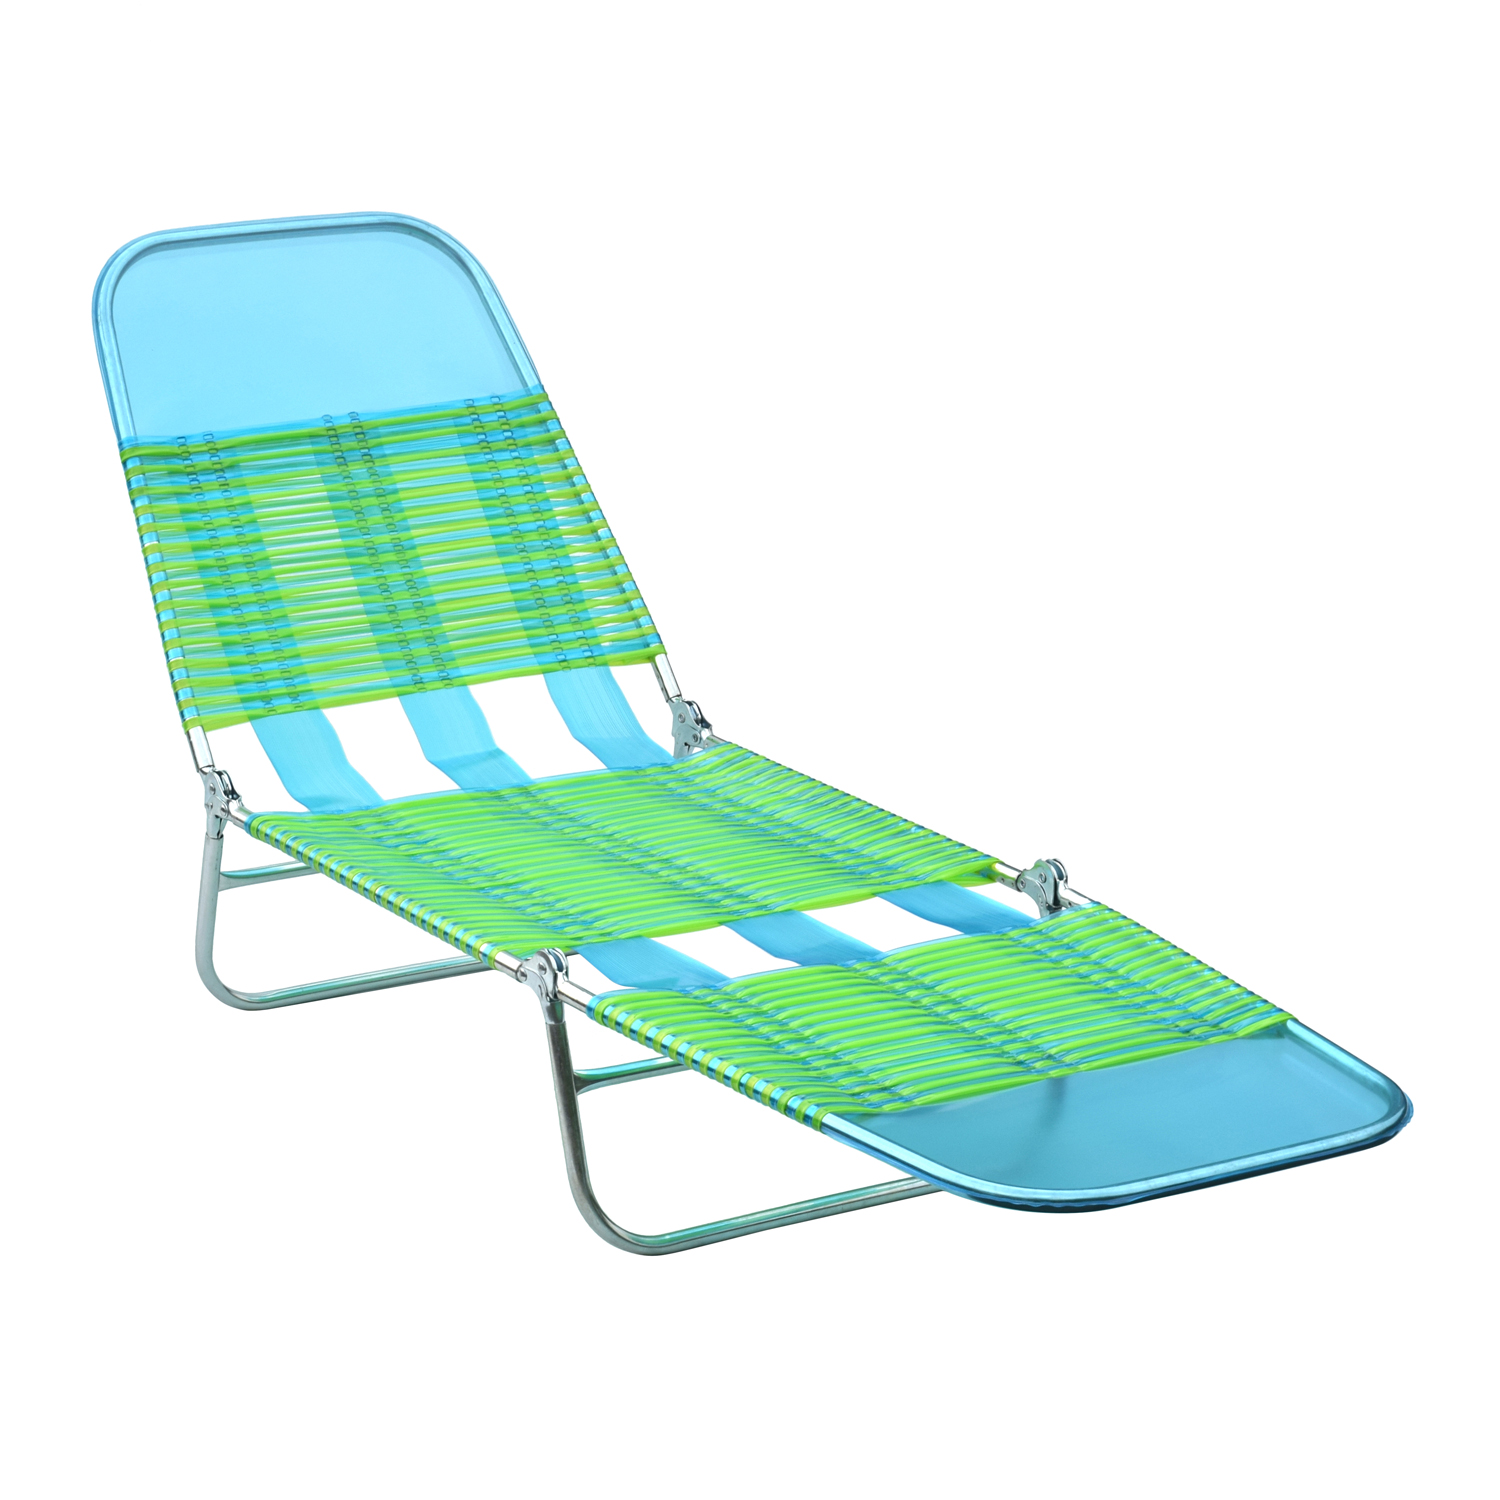 Mainstay Folding Beach Jelly Lounge-Blue/Lime Green ...